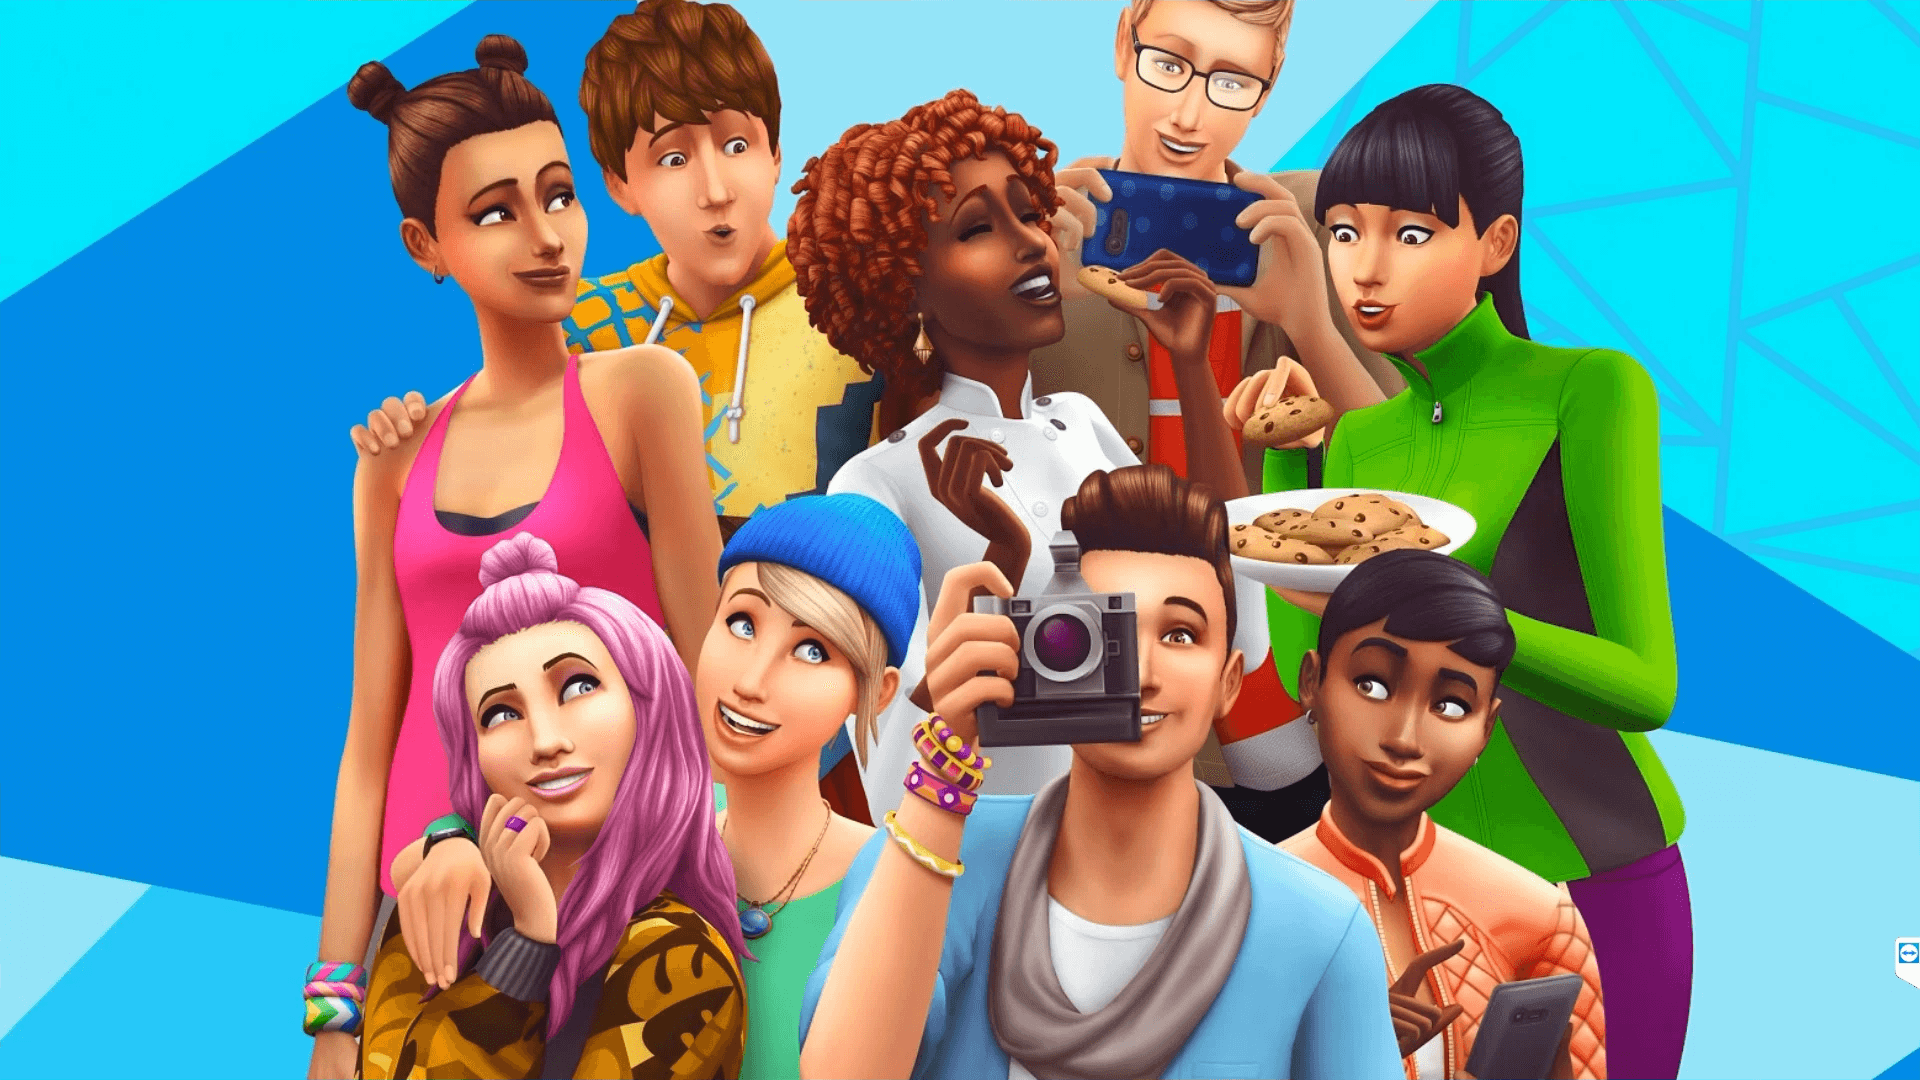 Opinion: The Sims 4's Business Model is Incredibly Unfair to its Players